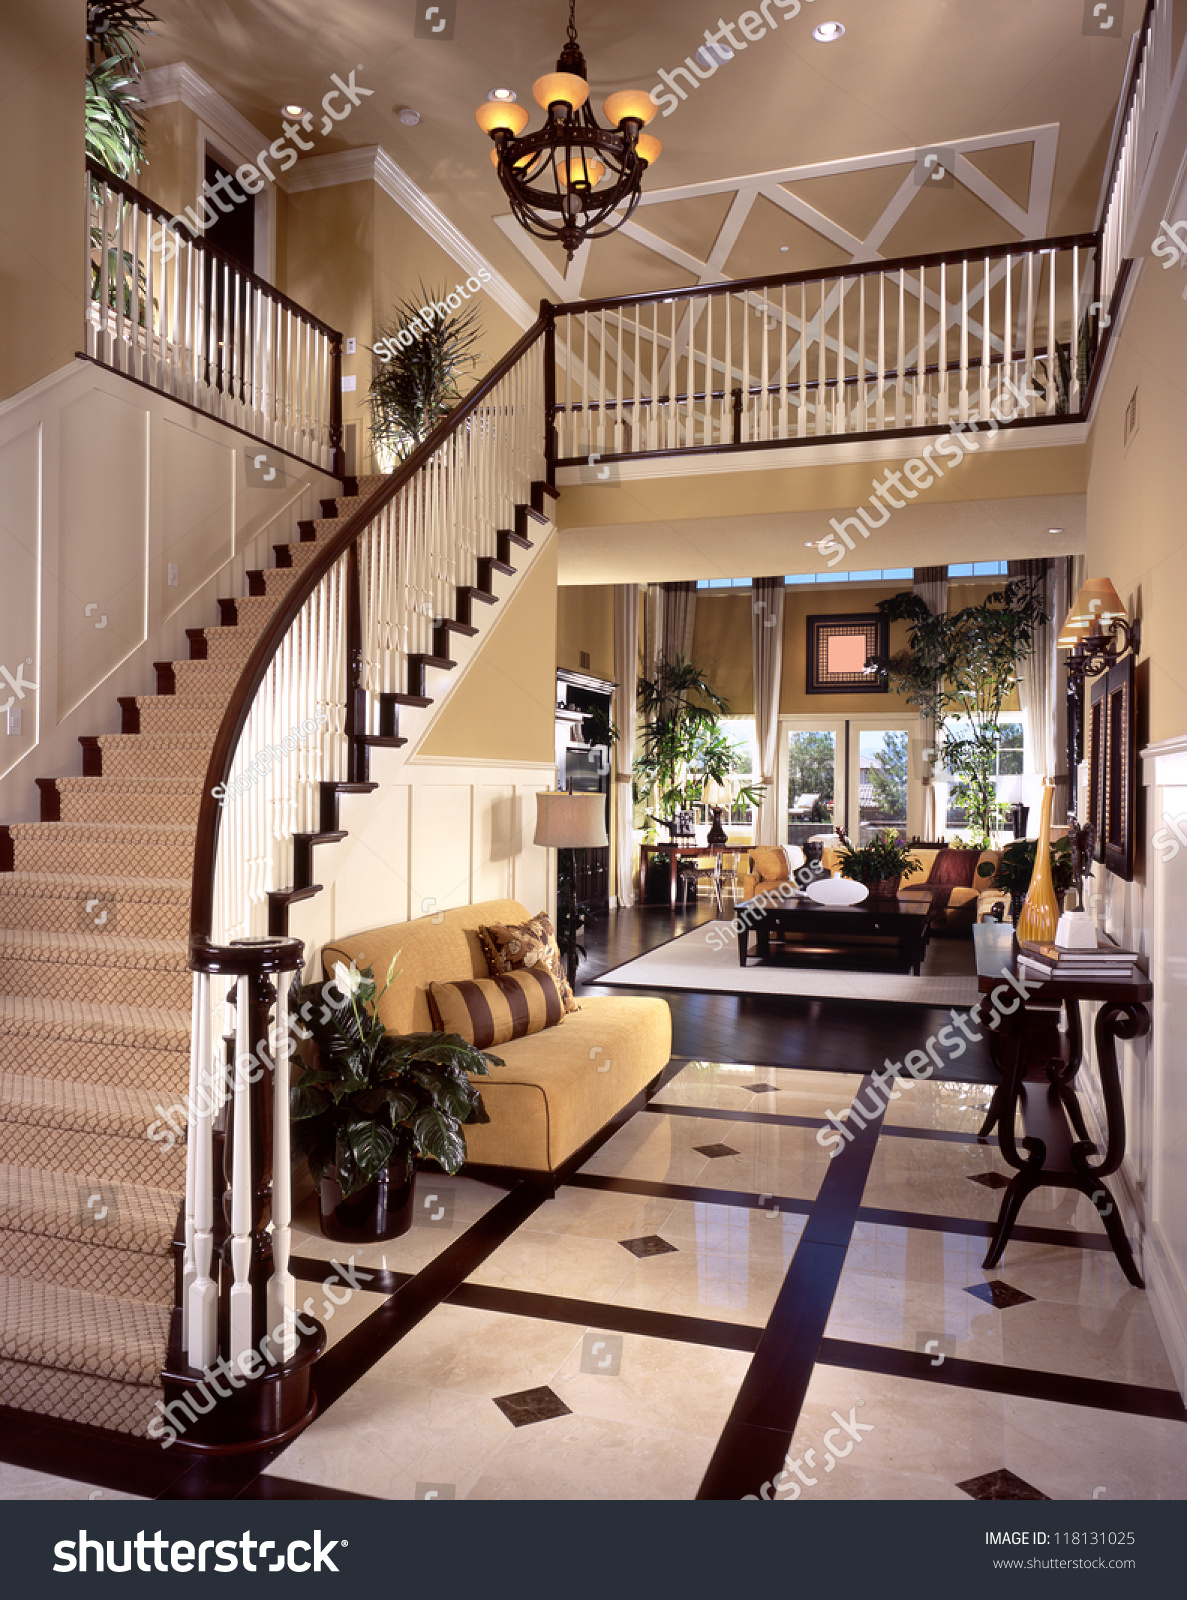 Stock Room Design: Beautiful Entry Staircase This Luxury Stairway Stock Photo